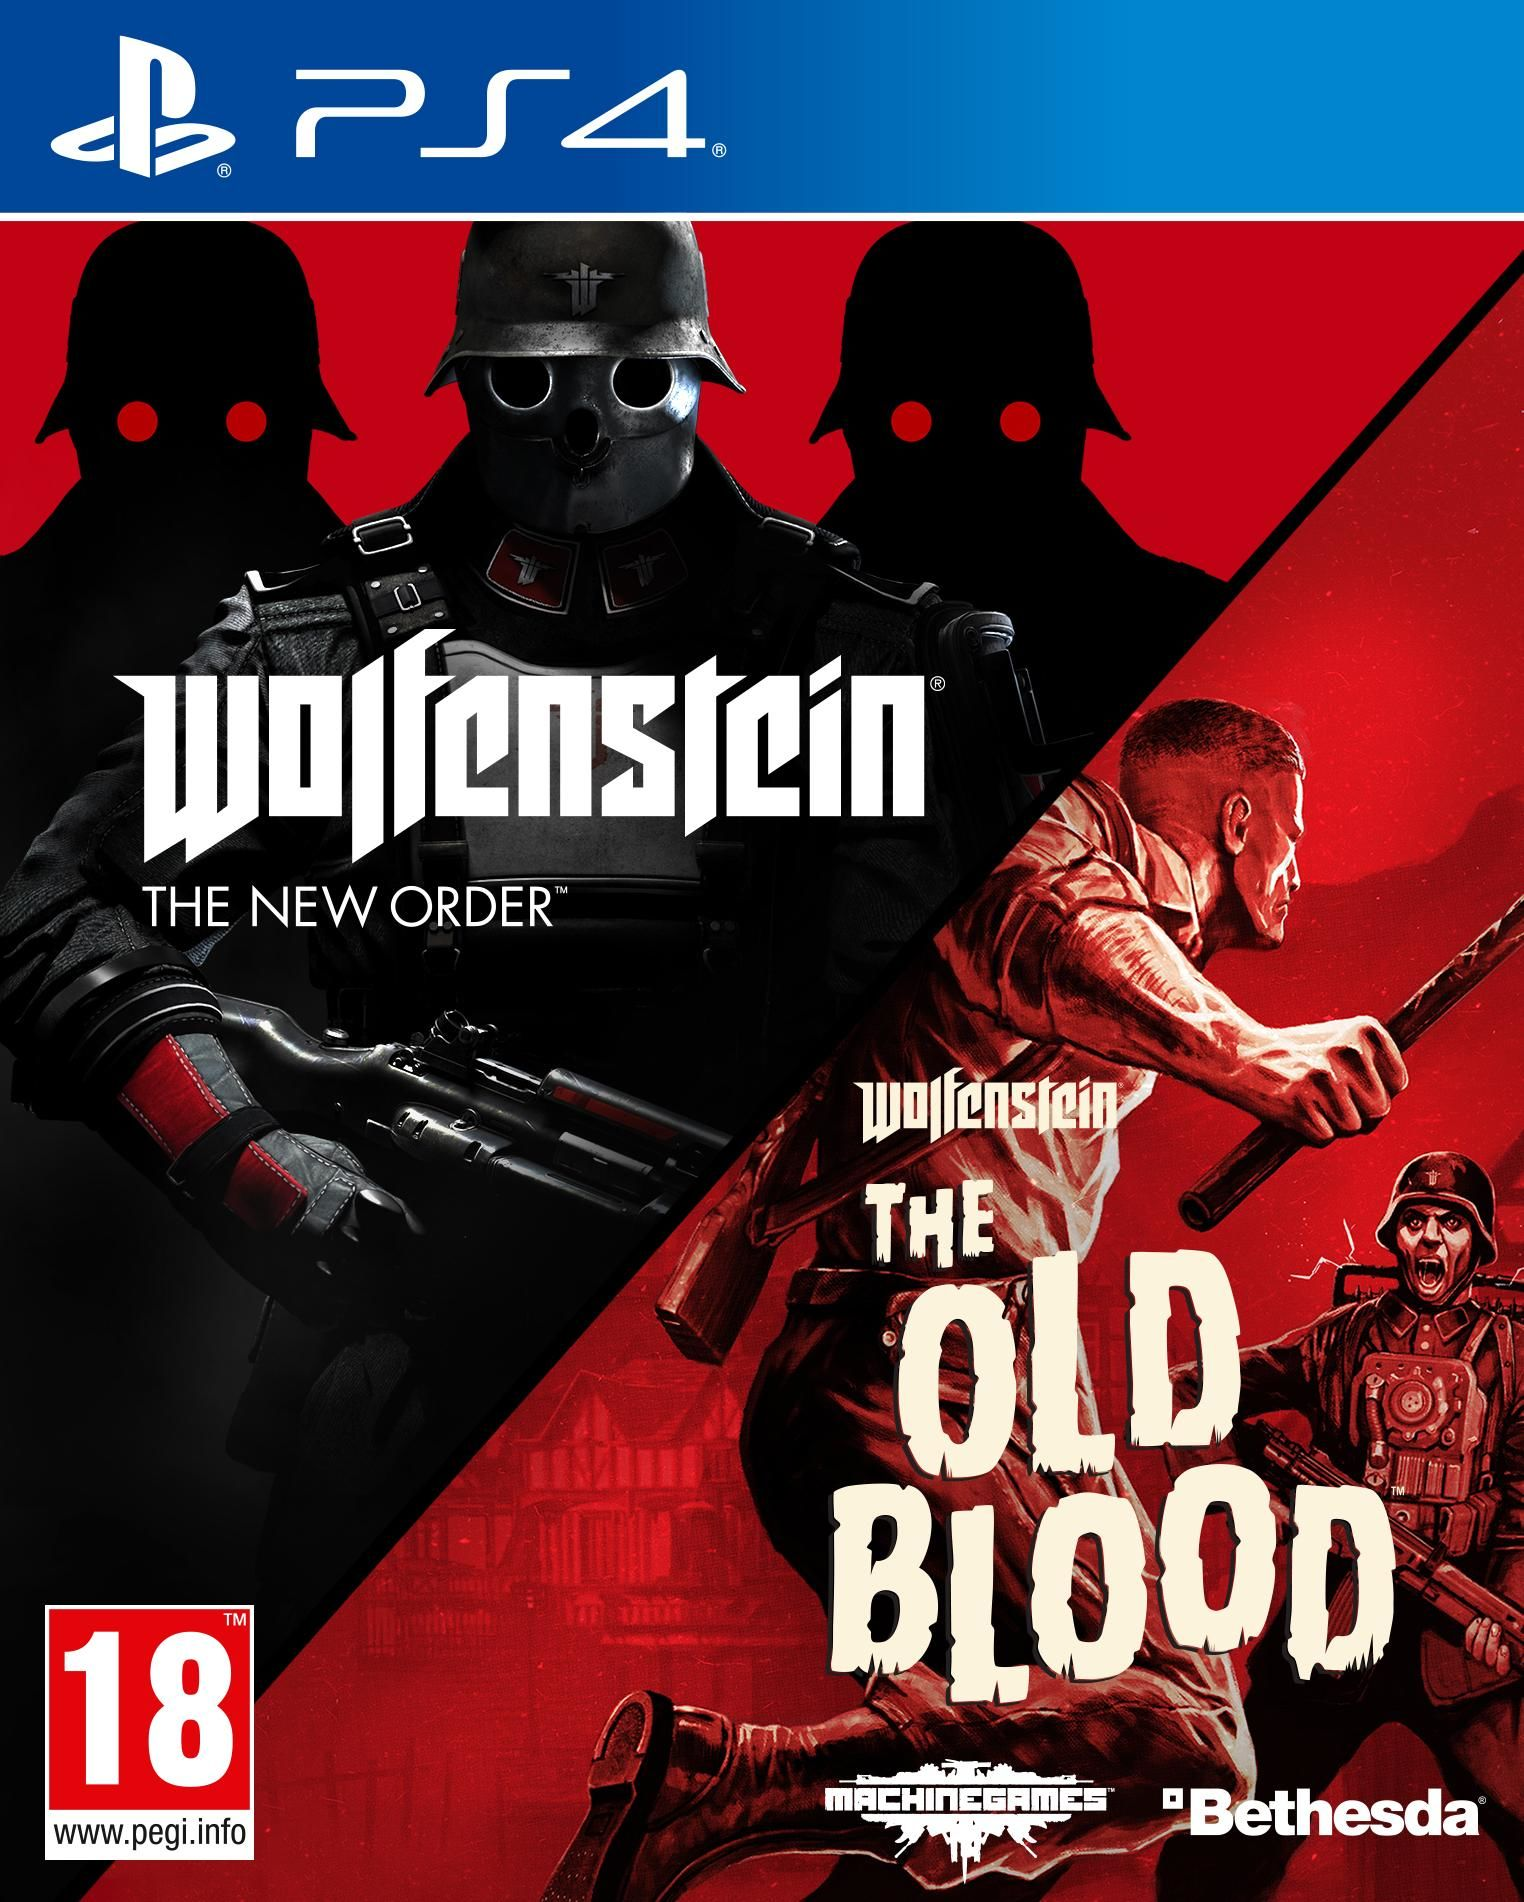 Wolfenstein Double Pack - The New Order and The Old Blood (AUS)